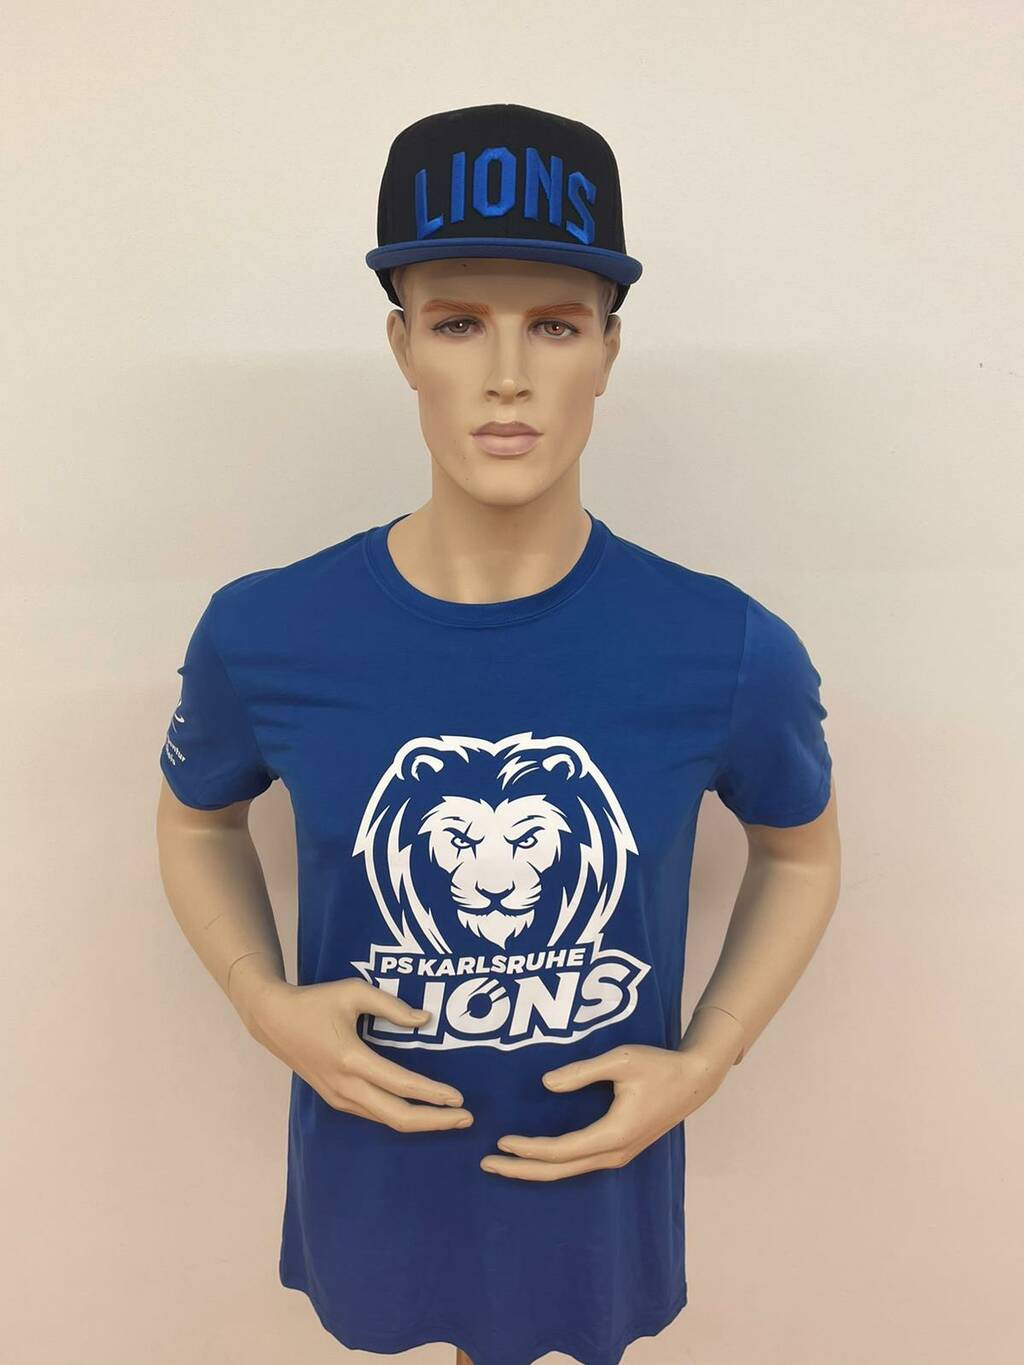 Fan Shirt Lions - PS Karlsruhe Lions Fan Shop